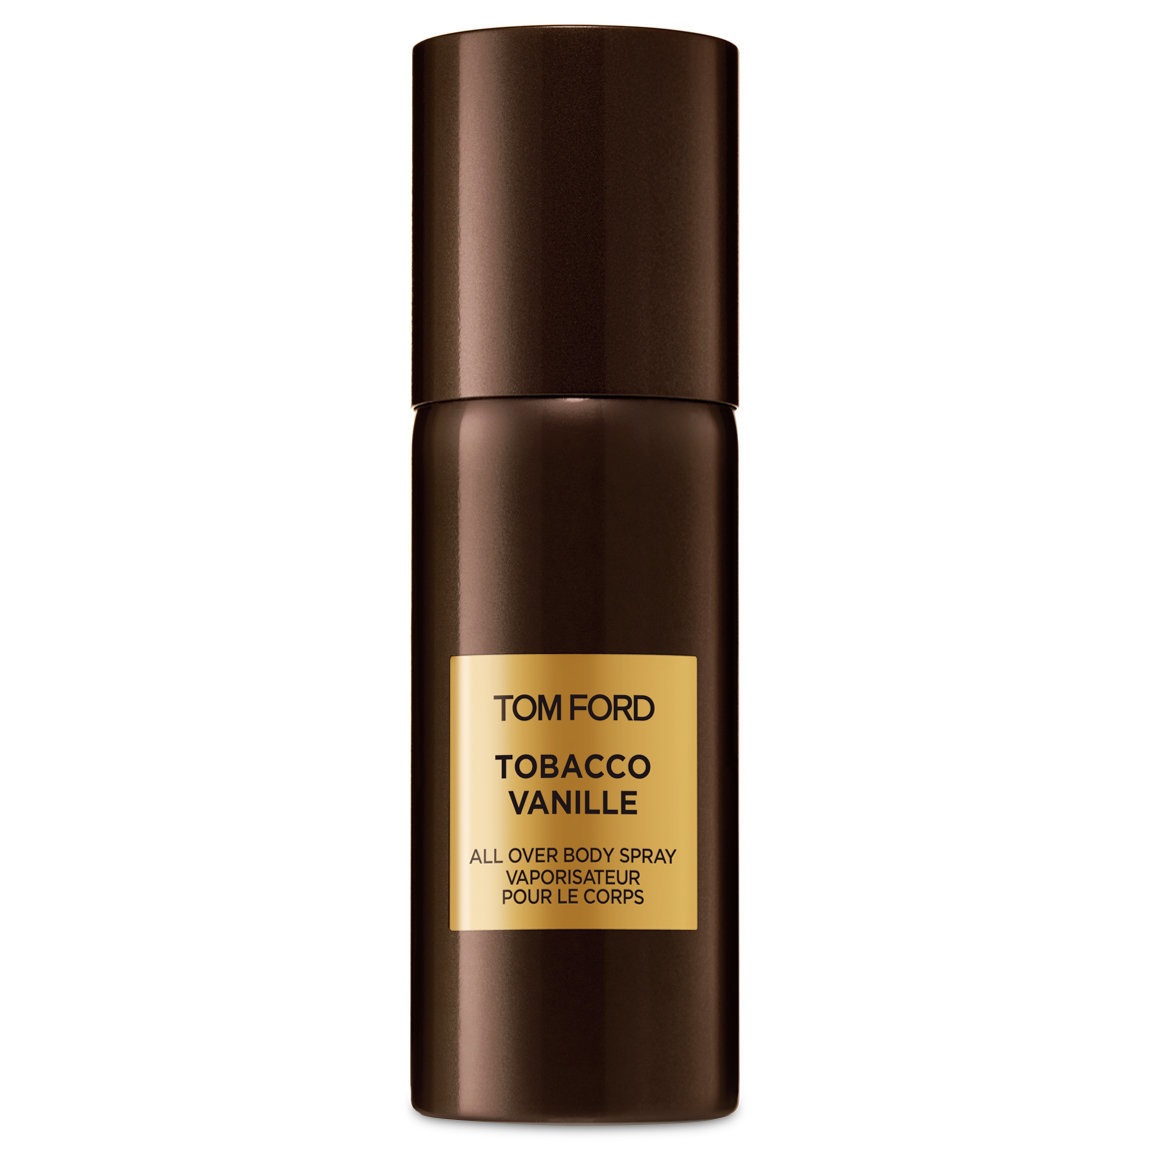 TOM FORD Tobacco Vanille All Over Body Spray alternative view 1 - product swatch.